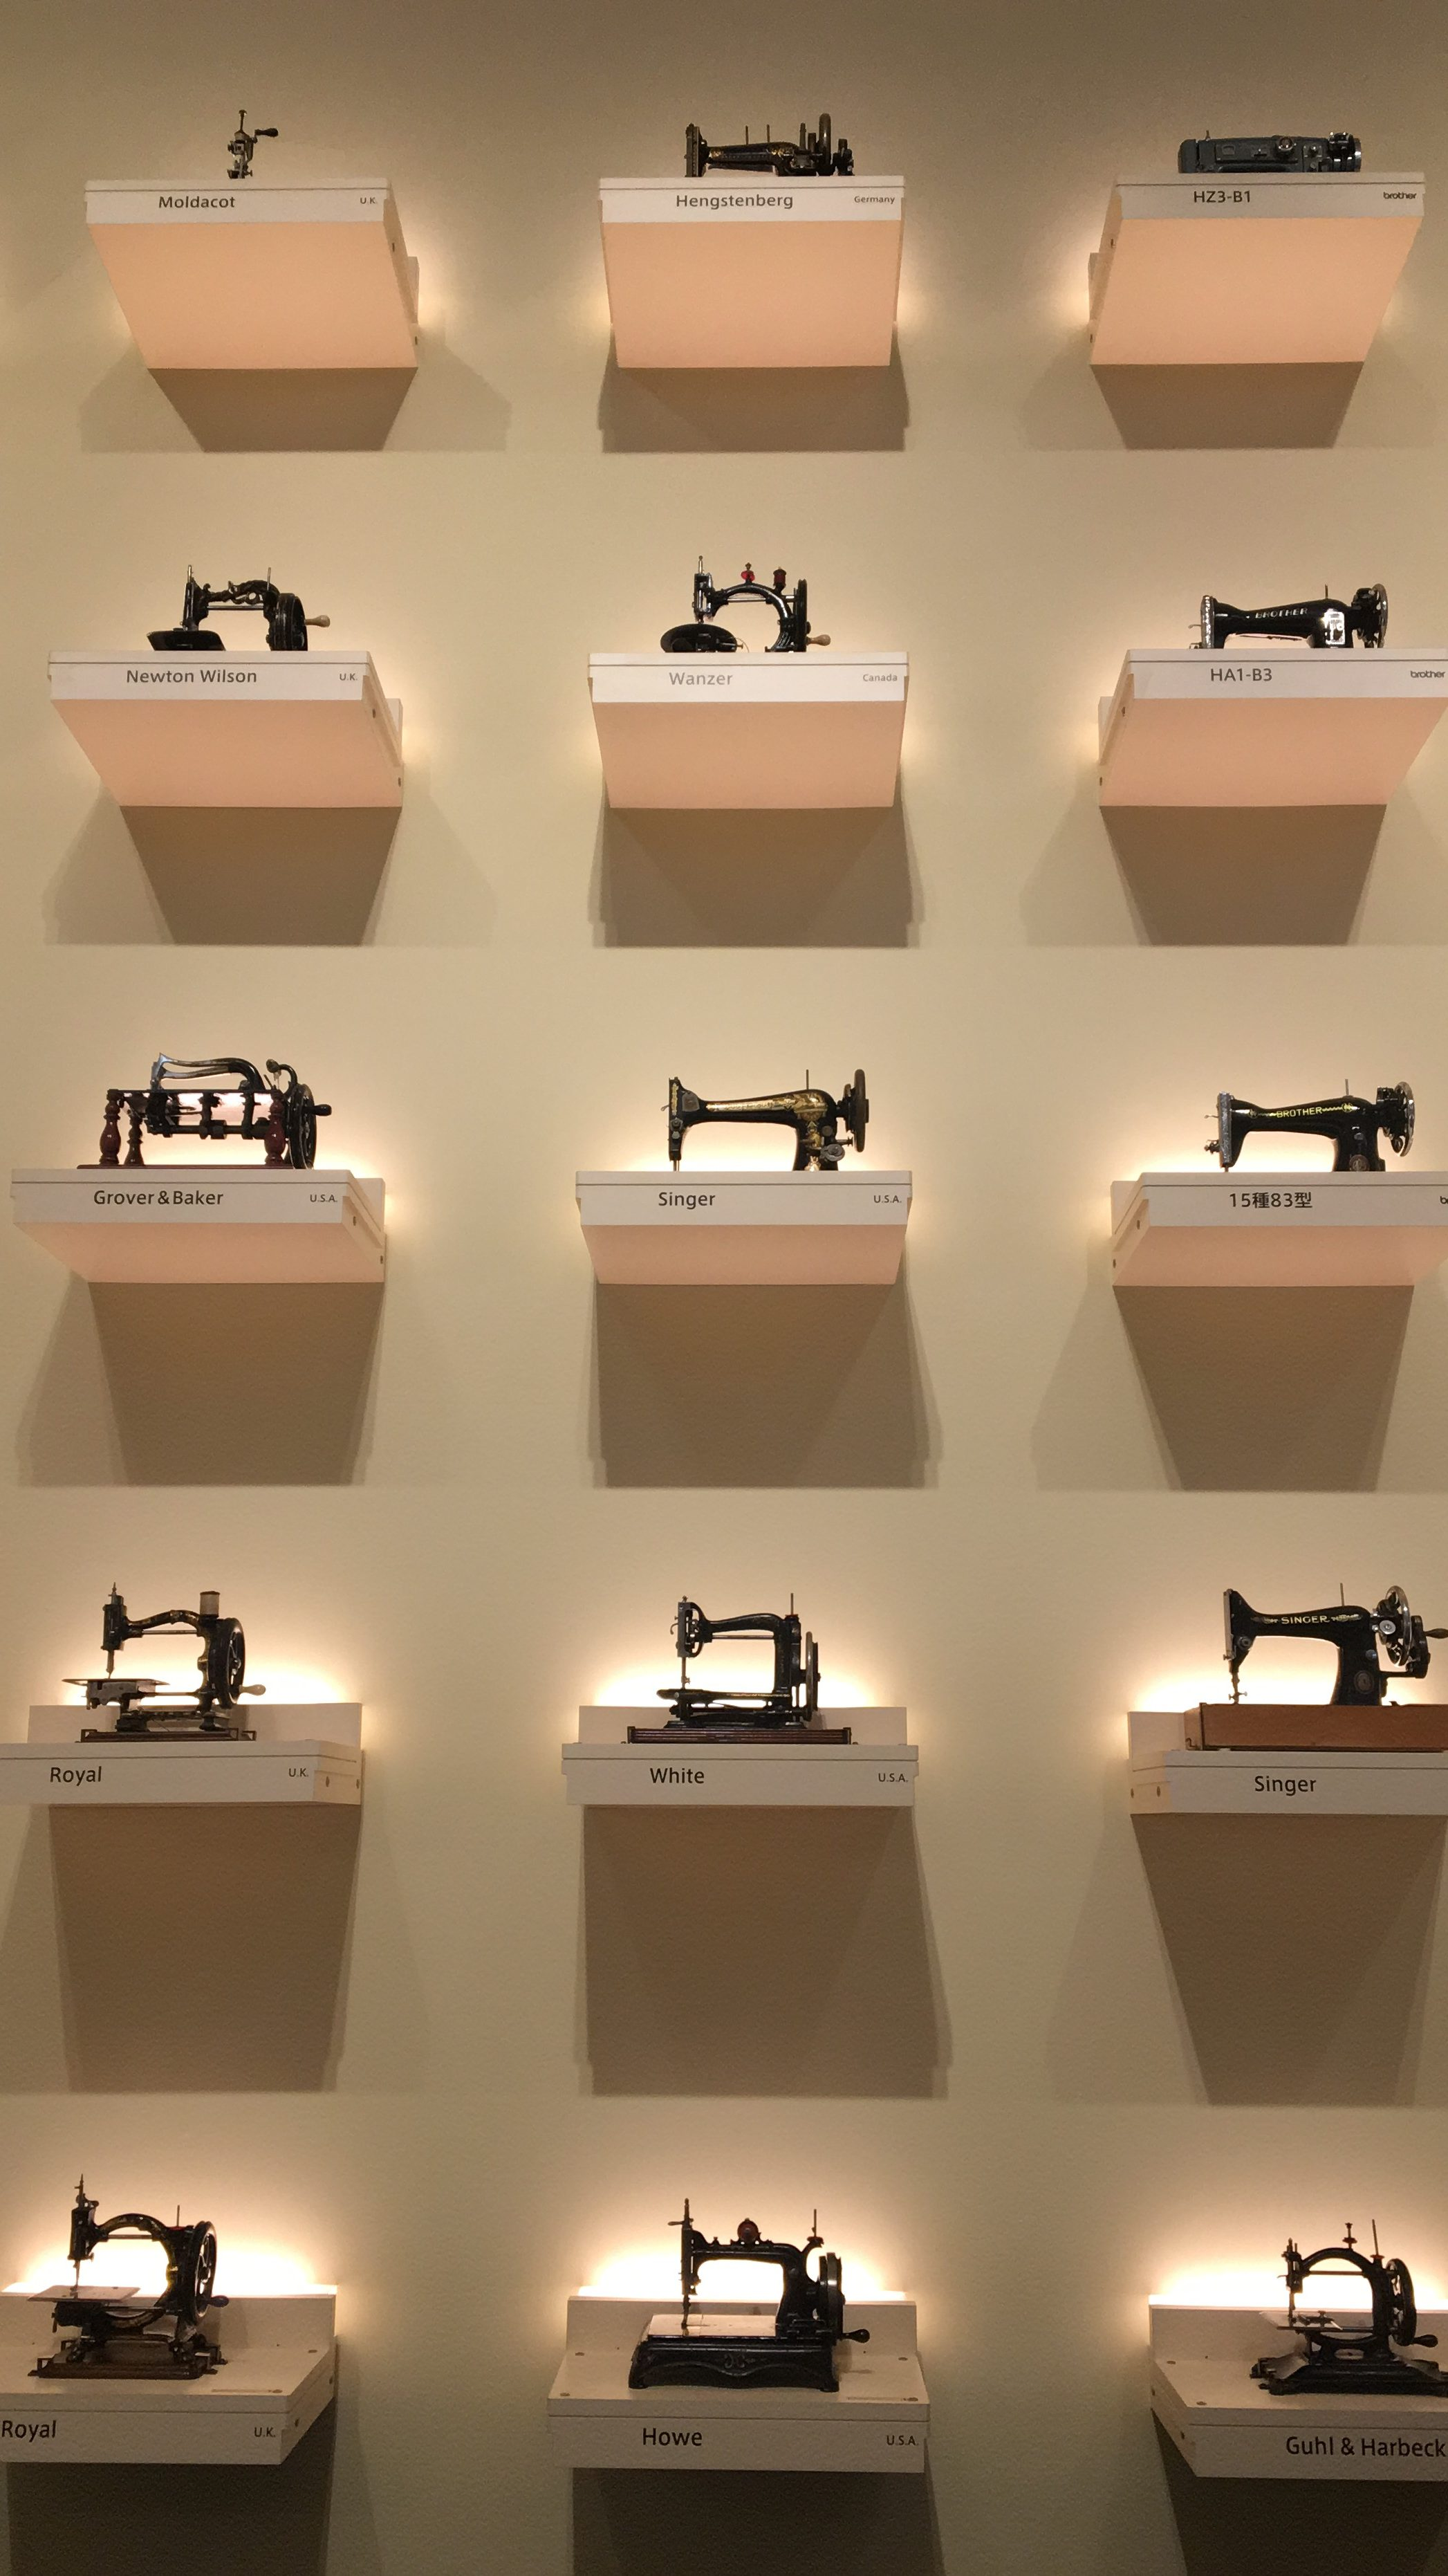 Picture of exhibits of sewing machines from around the world